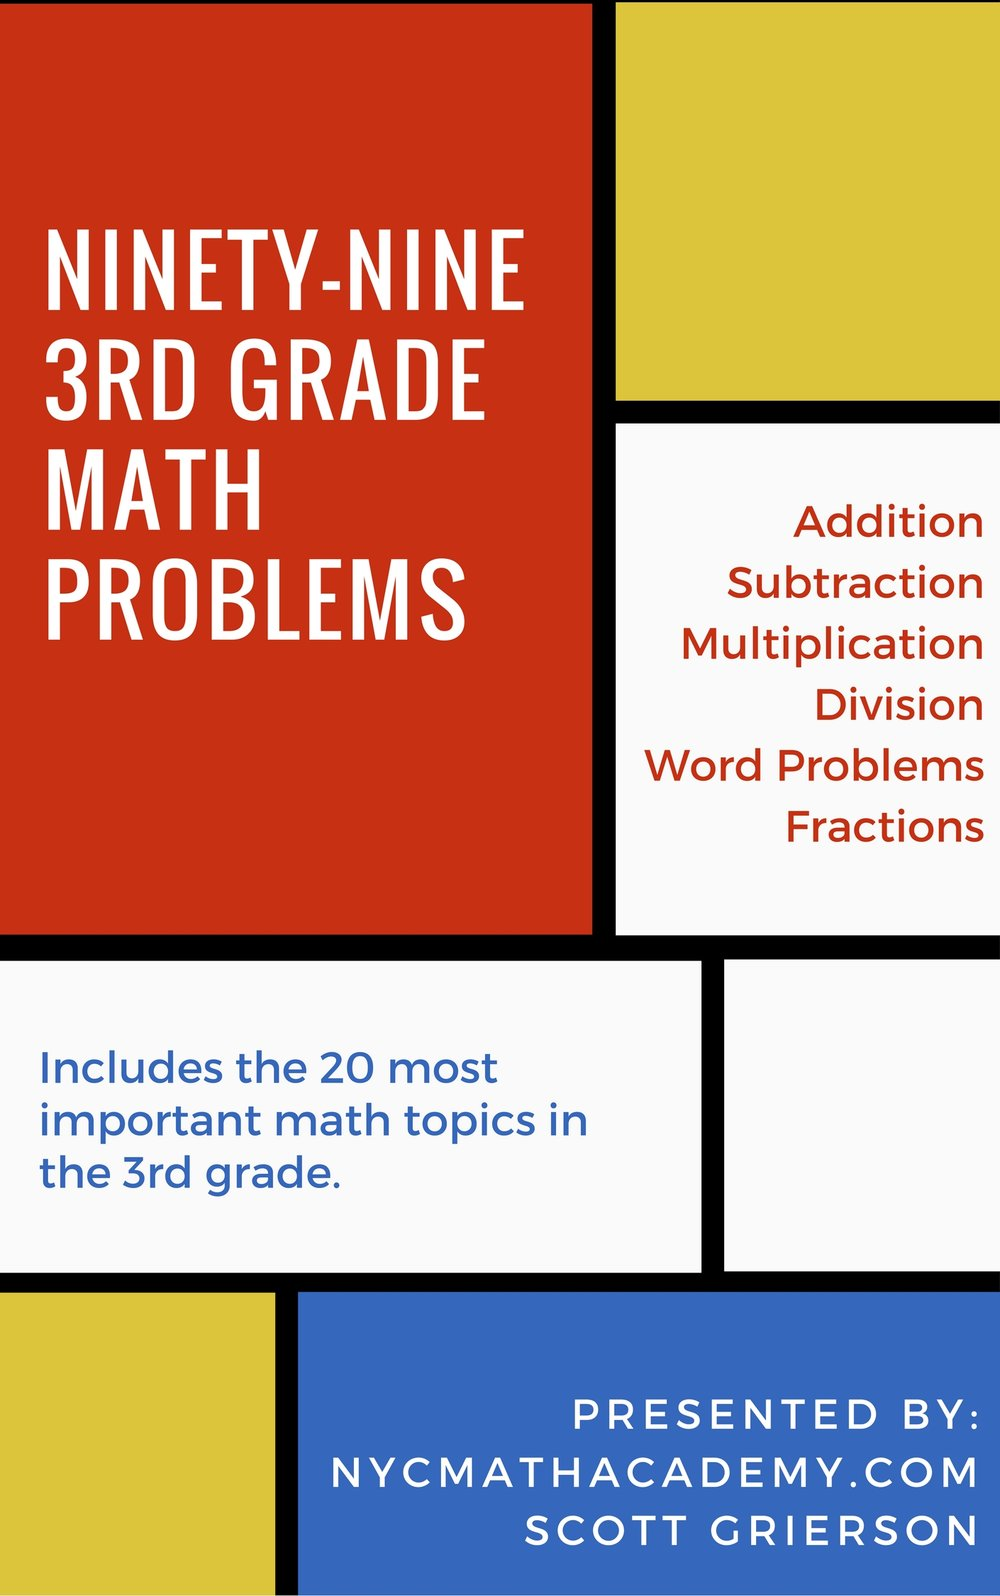 We appreciate your business!  Please Check out Our 3rd Grade math courses at   NYC MAth Academy. Try our courses risk free for 30 days! -  Find out more below: